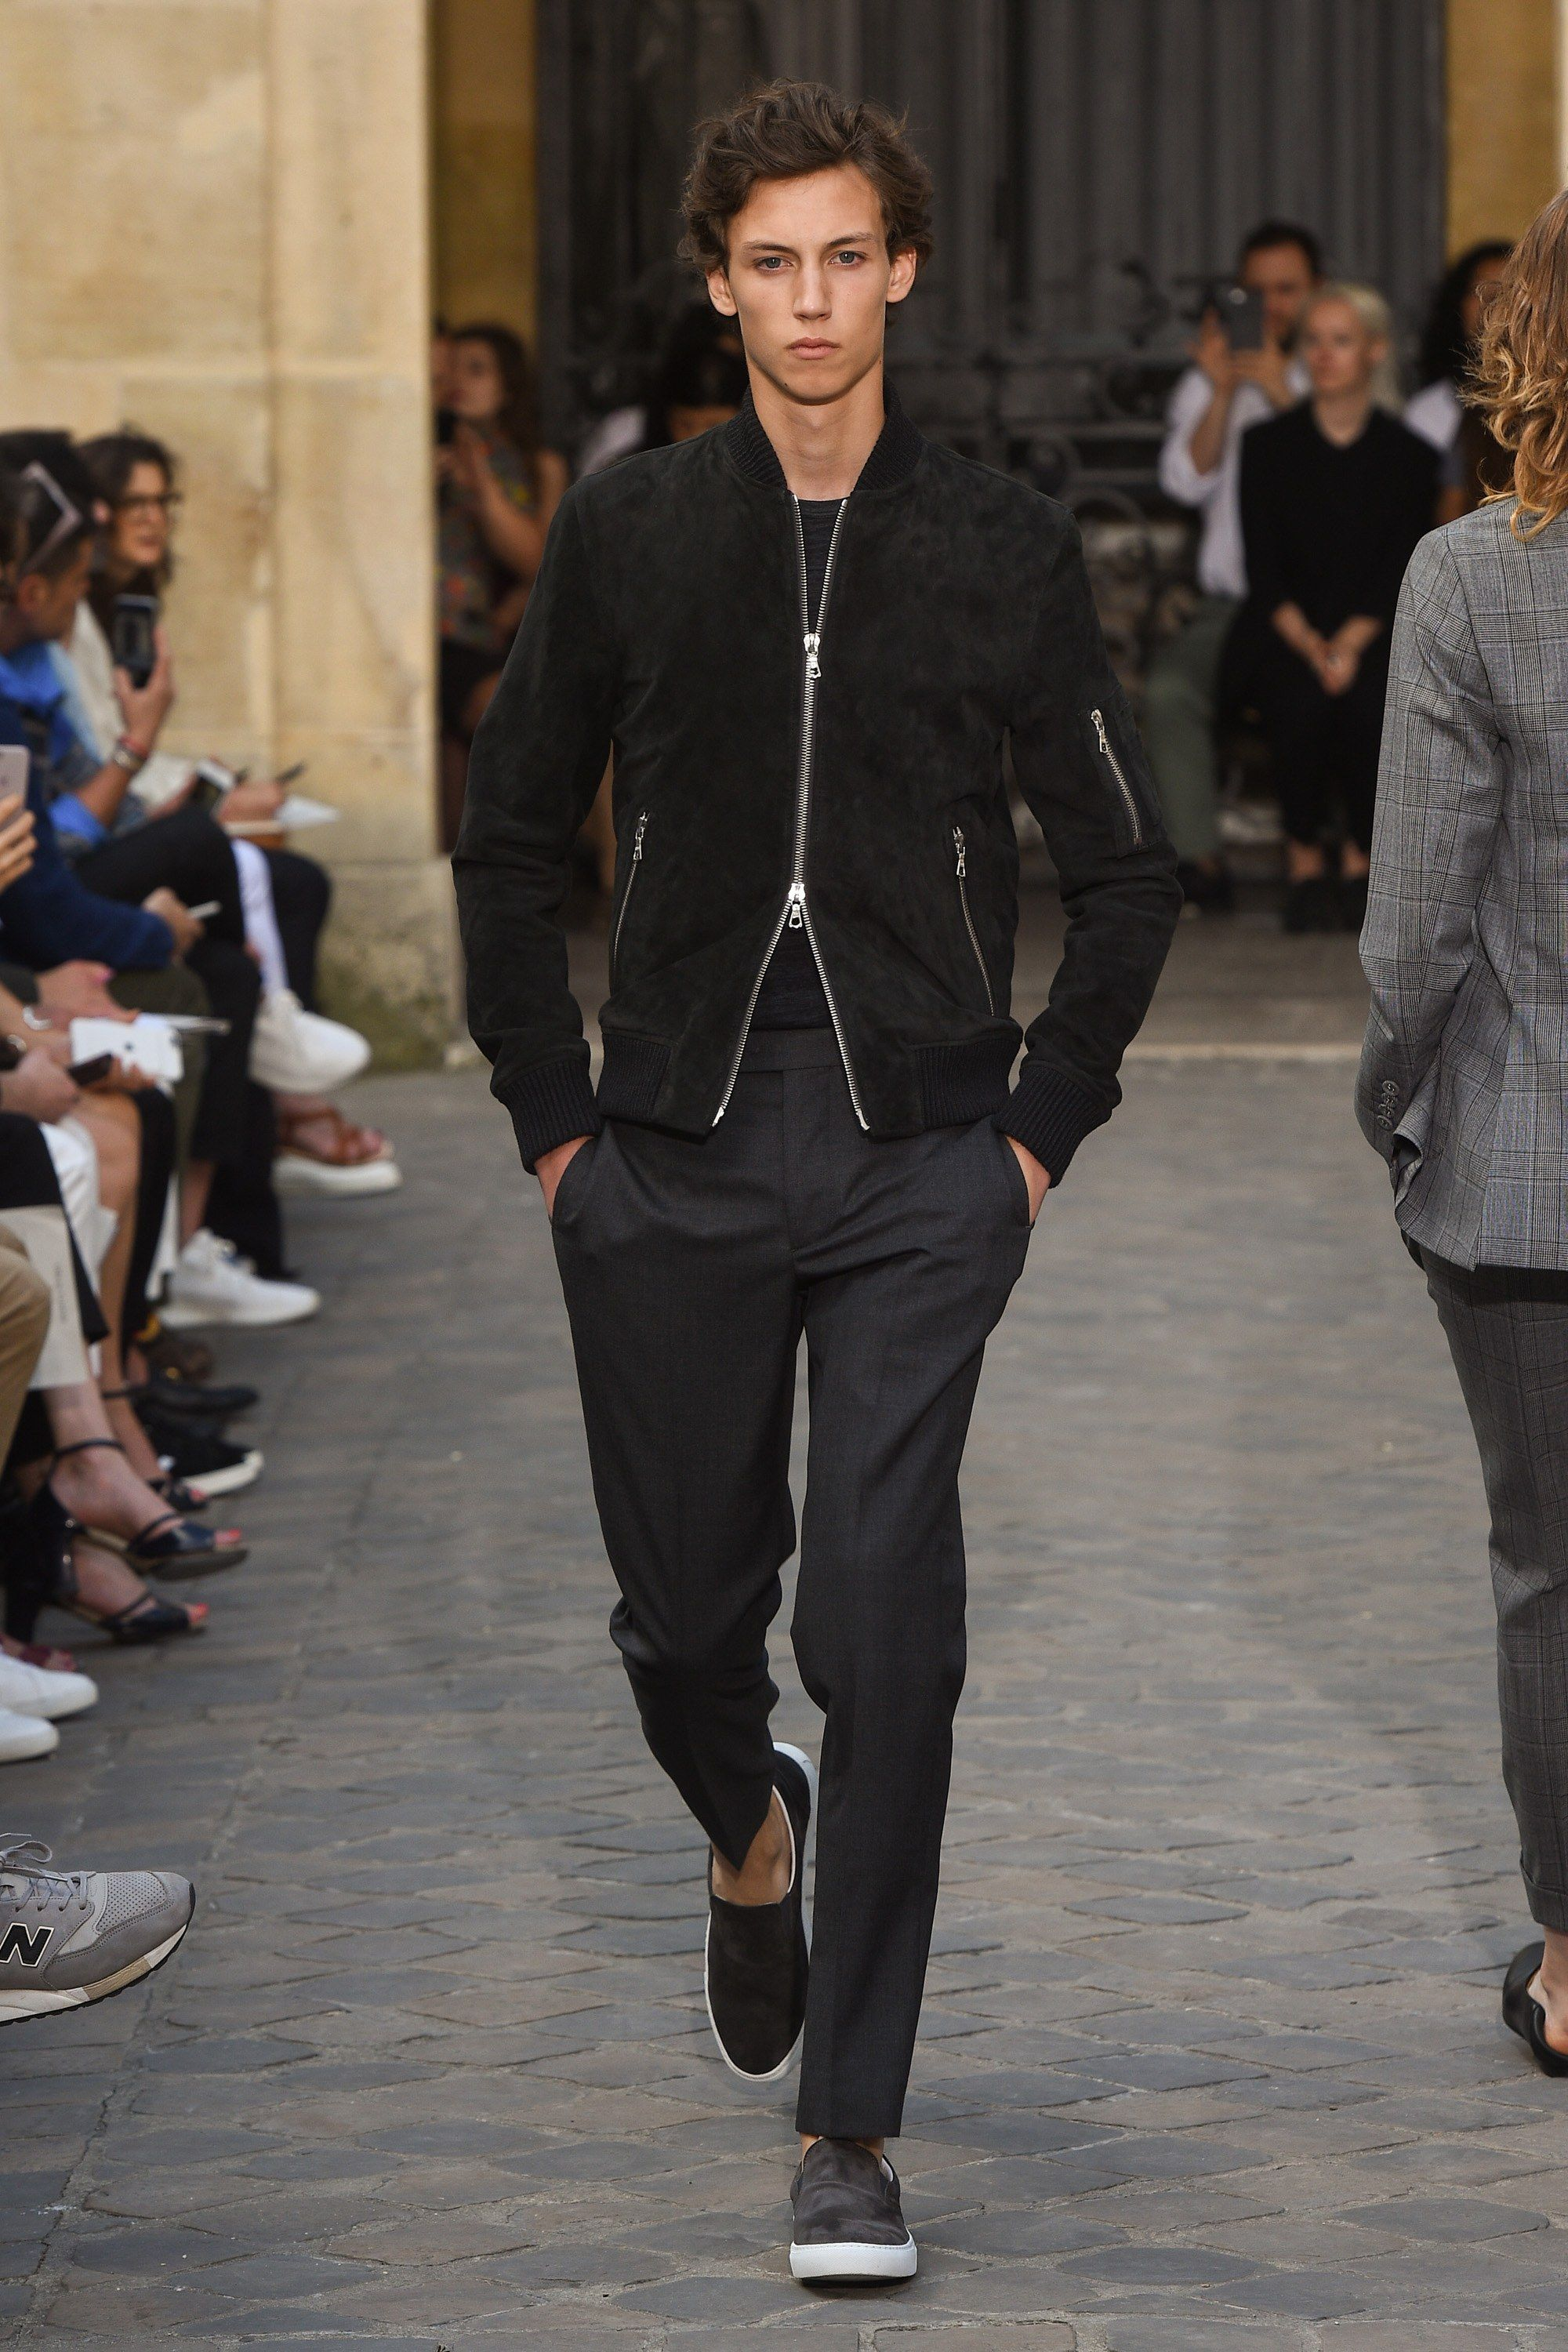 b27559934e5 See the complete Officine Generale Spring 2018 Menswear collection. High  Fashion Men